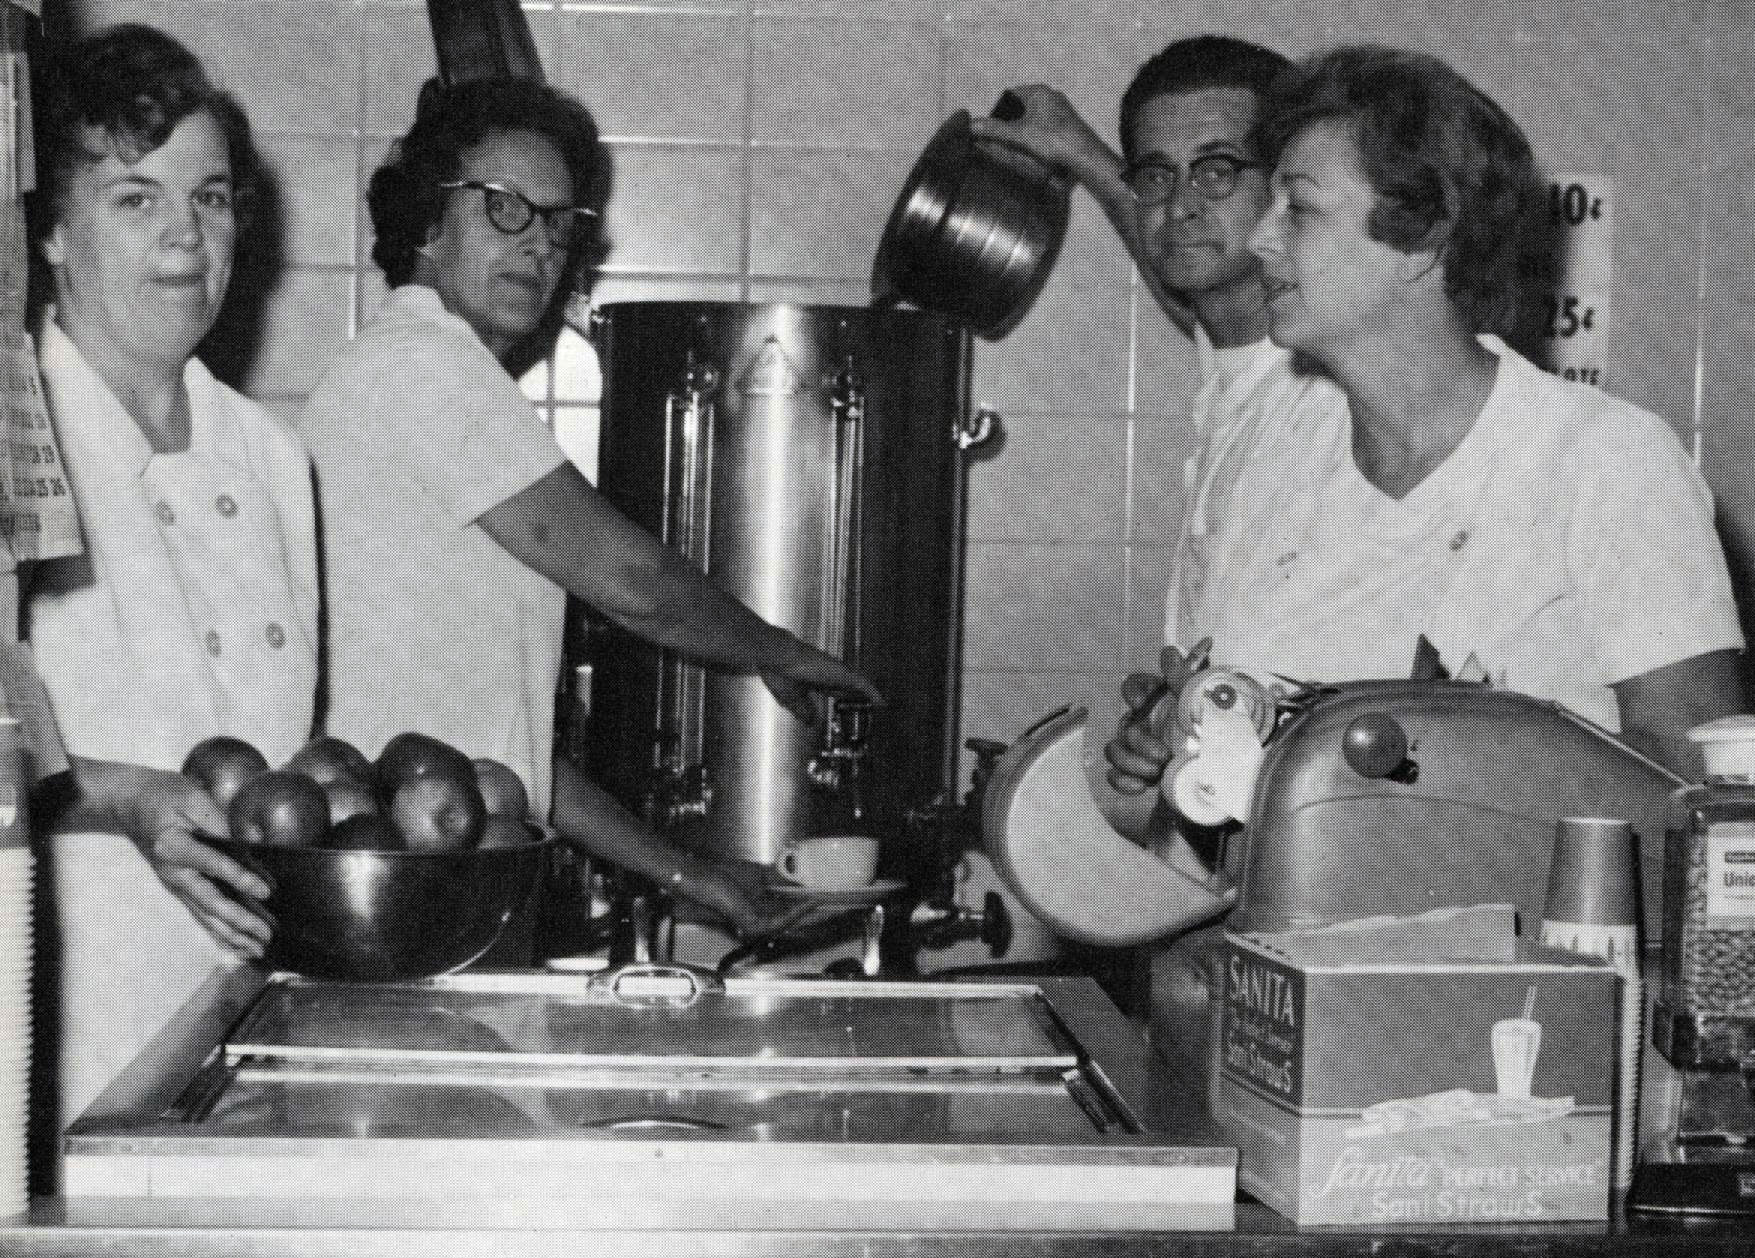 cafeteria-workers-1969